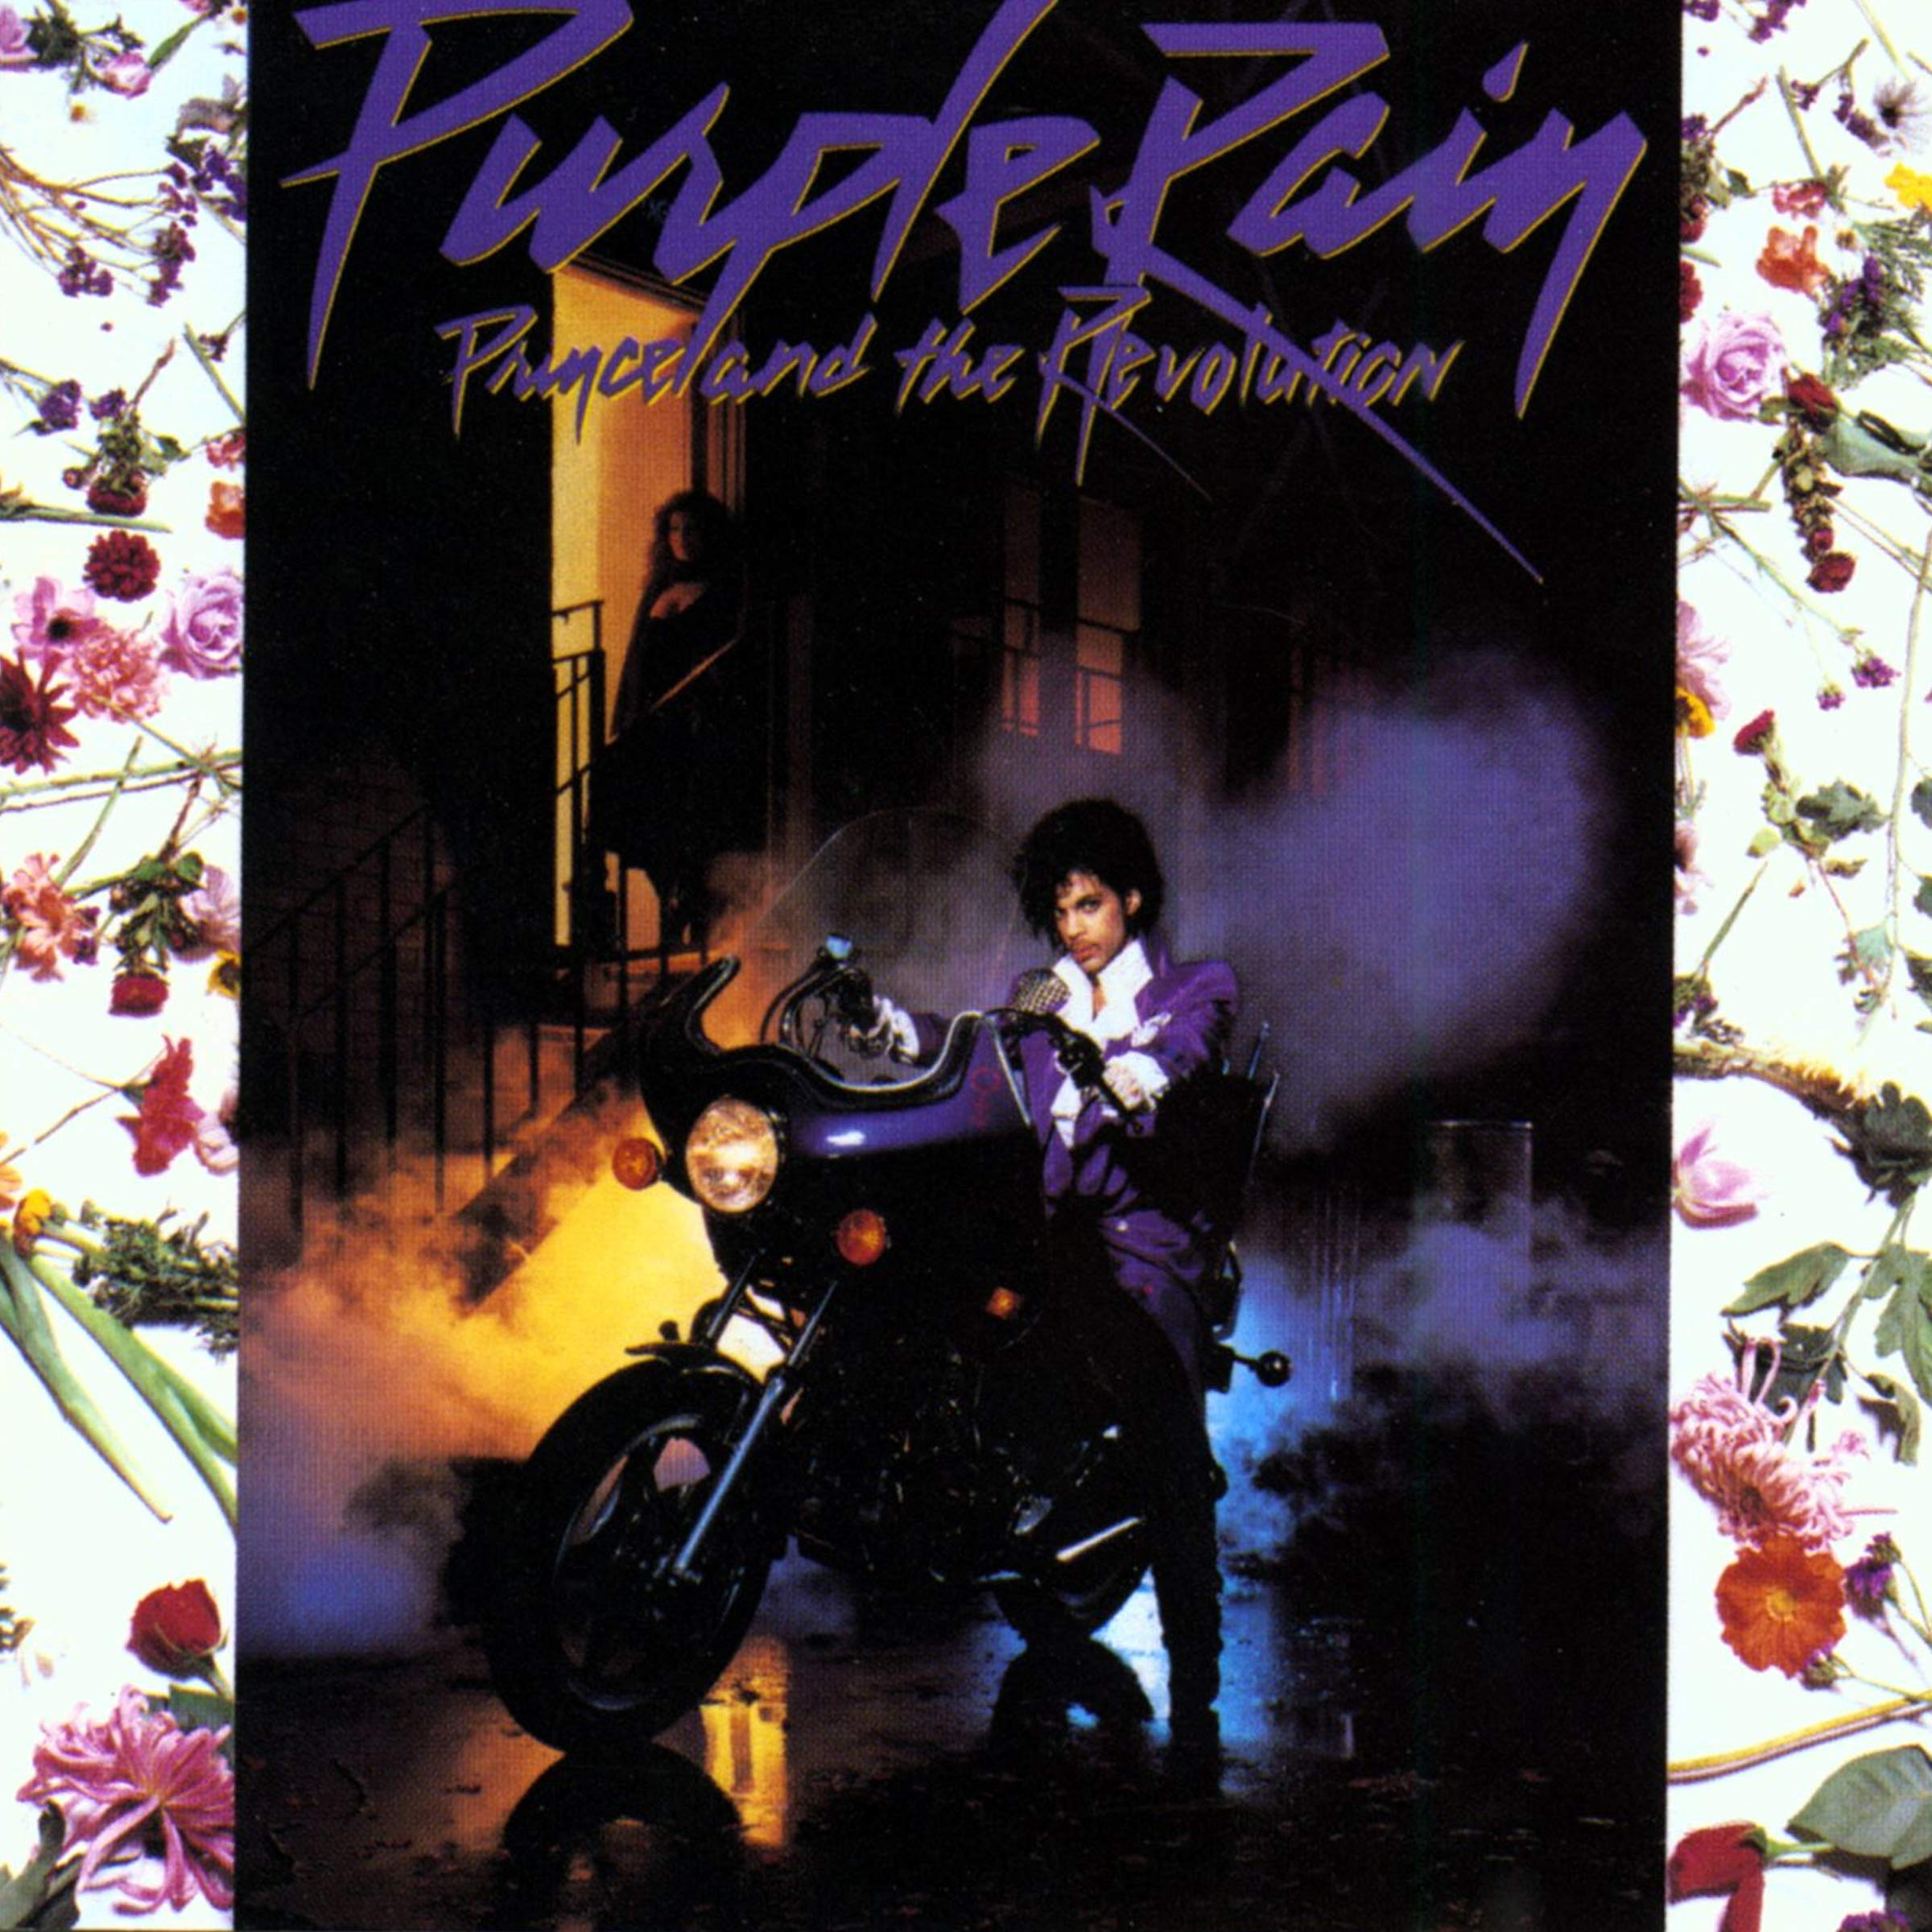 Prince and the Revolution - Purple Rain (Vinyl LP) by OST/PRINCE